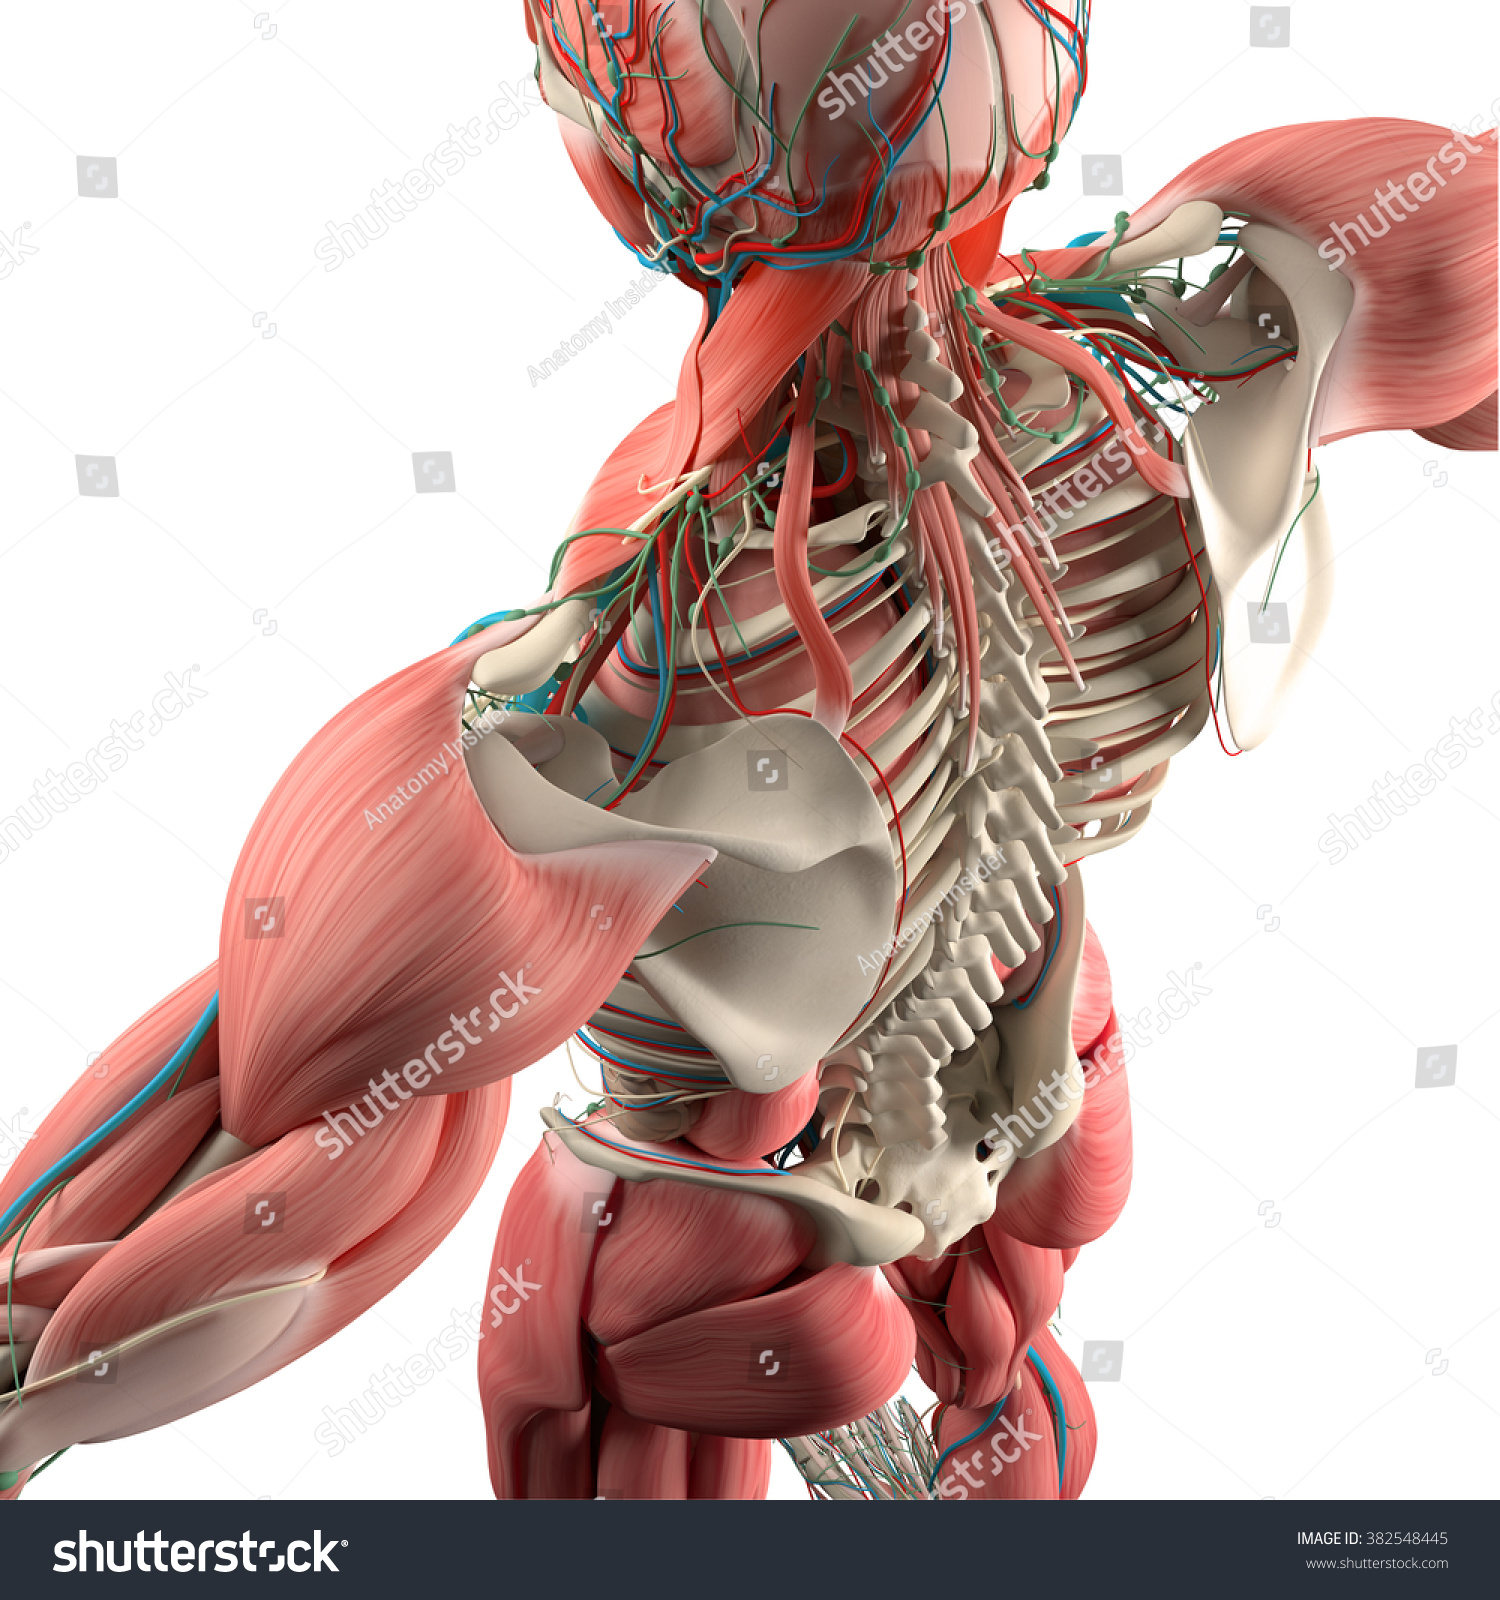 Human Anatomy Backtorso Skeletonmuscle High Angle Stock Illustration